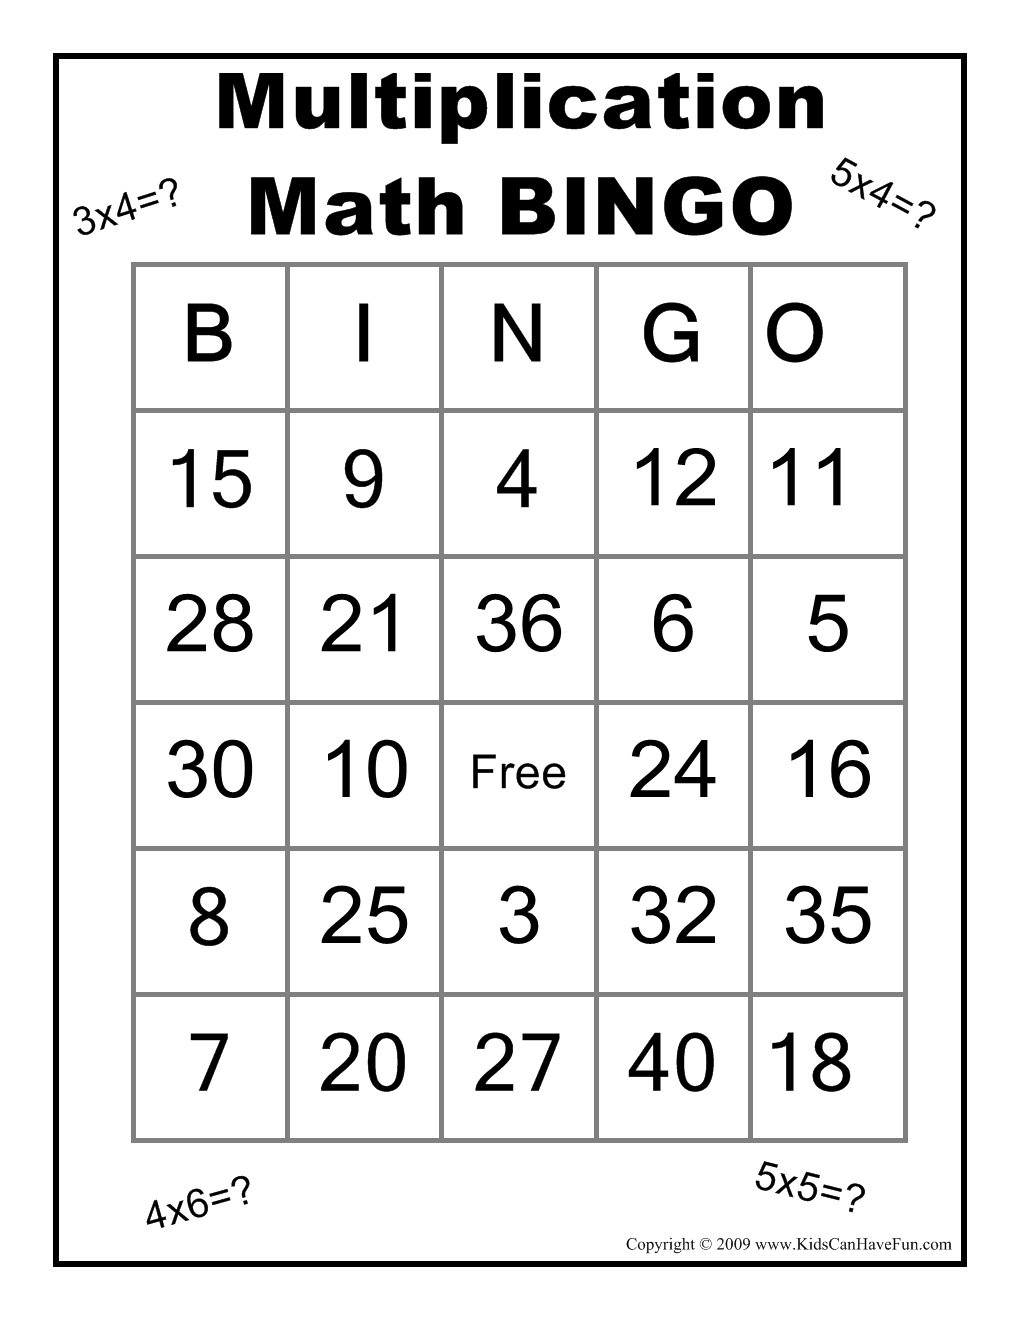 Worksheet Printable Multiplication Cards multiplication math bingo game httpwww kidscanhavefun com dice print off cards on cardstock and laminate a group of 2 players each gets card roll and